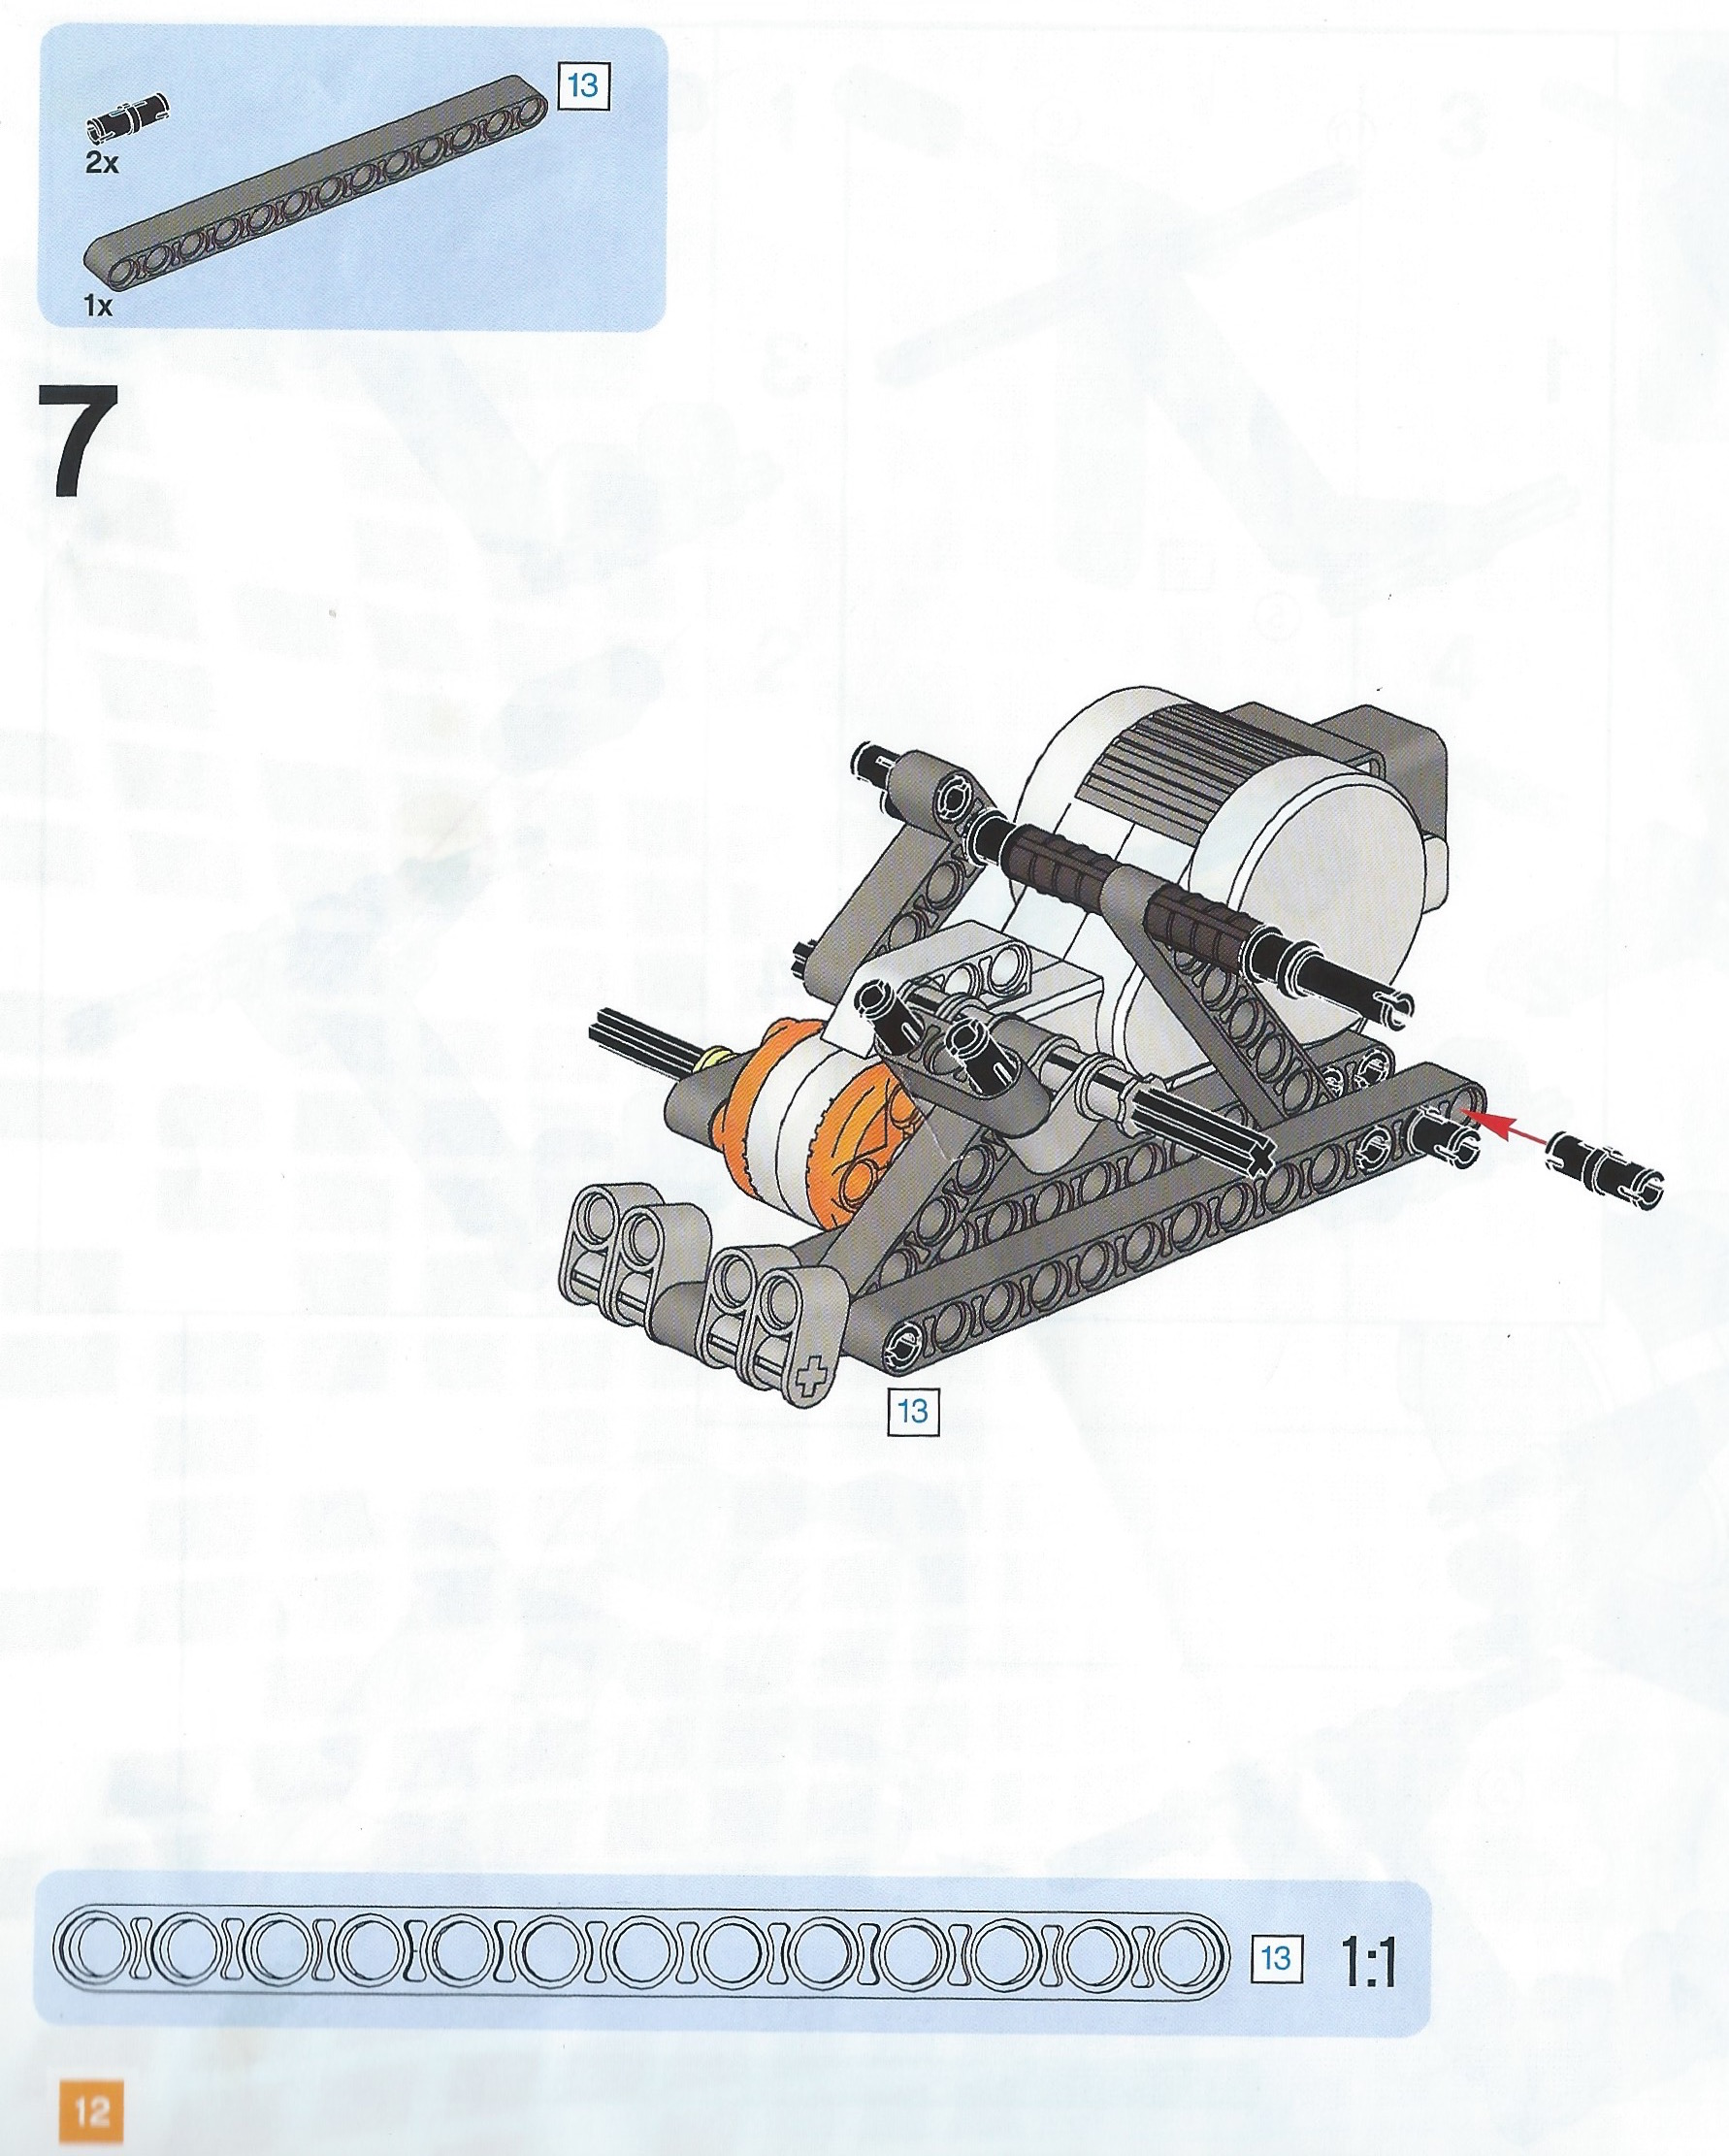 how to build a robot dog step by step